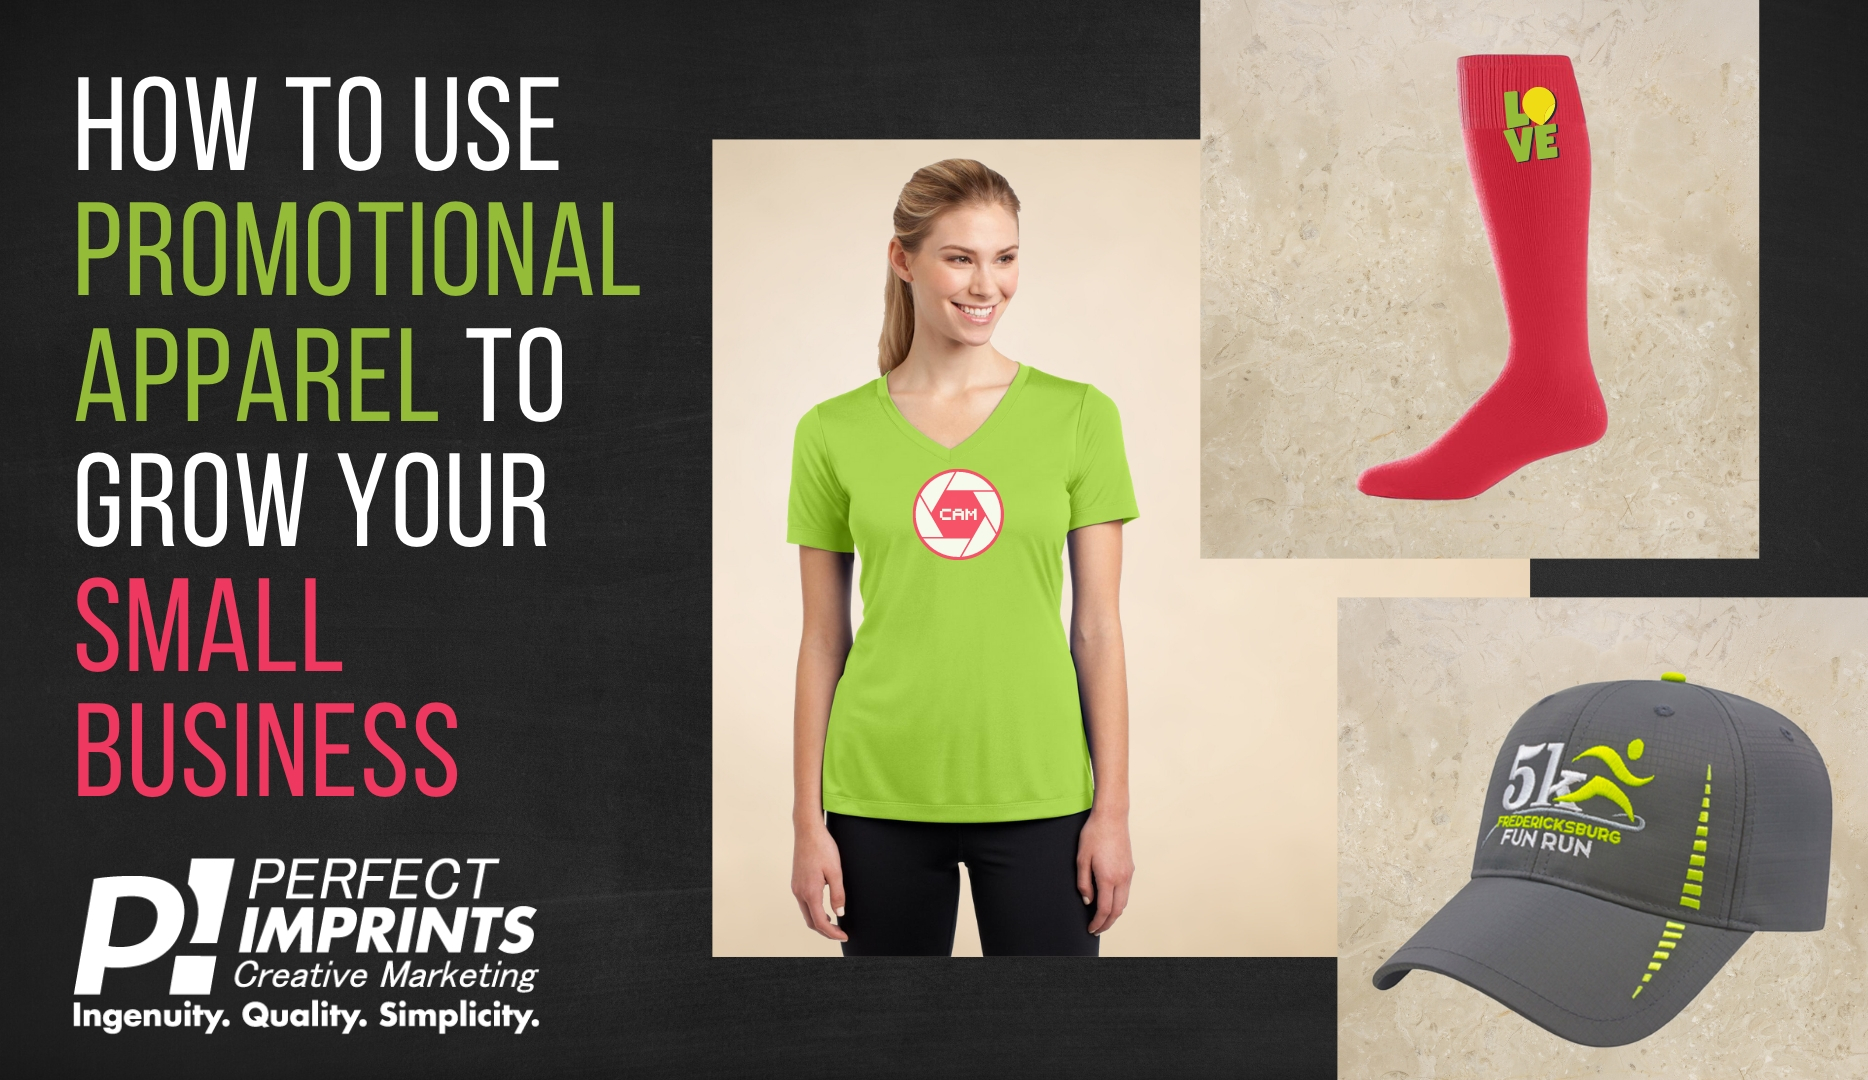 How to Use Promotional Apparel to Grow Your Small Business